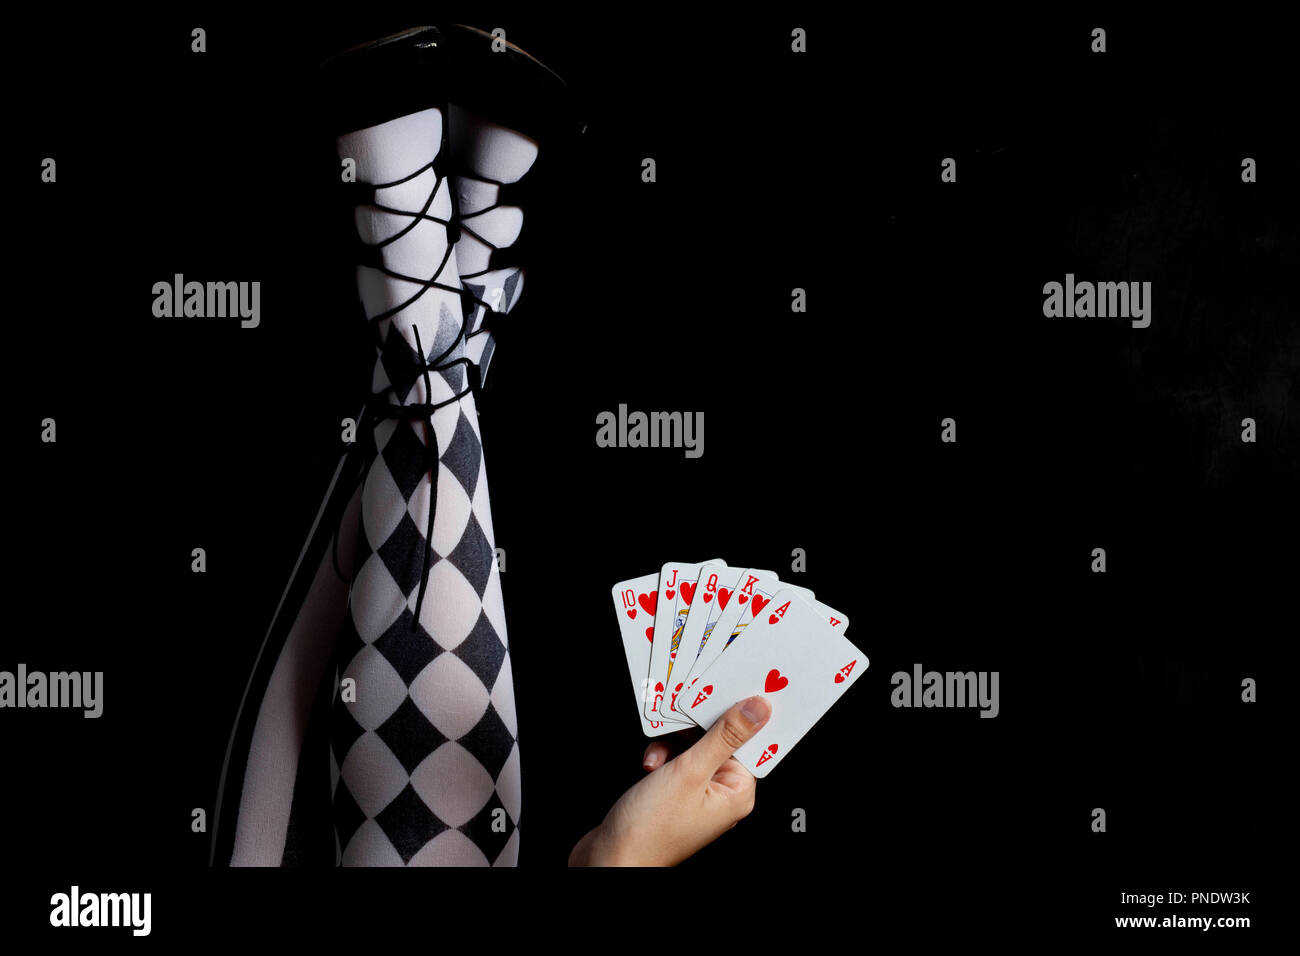 girl with tights holding play cards - royal flush - Stock Image